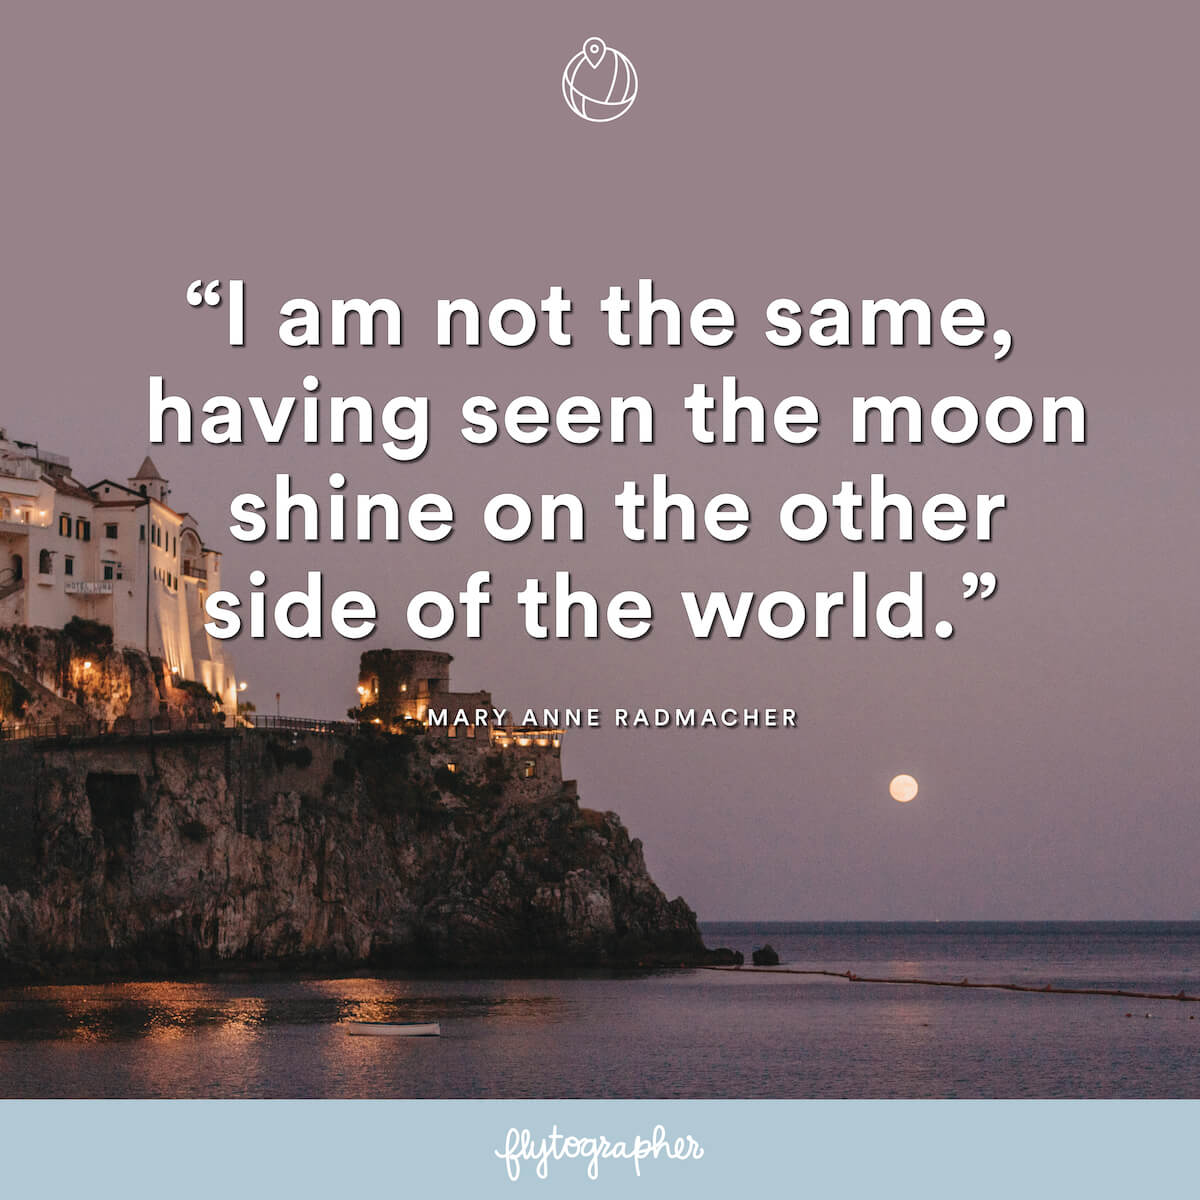 "Travel quote: ""I am not the same, having seen the moon shine on the other side of the world."" - Mary Anne Radmacher"